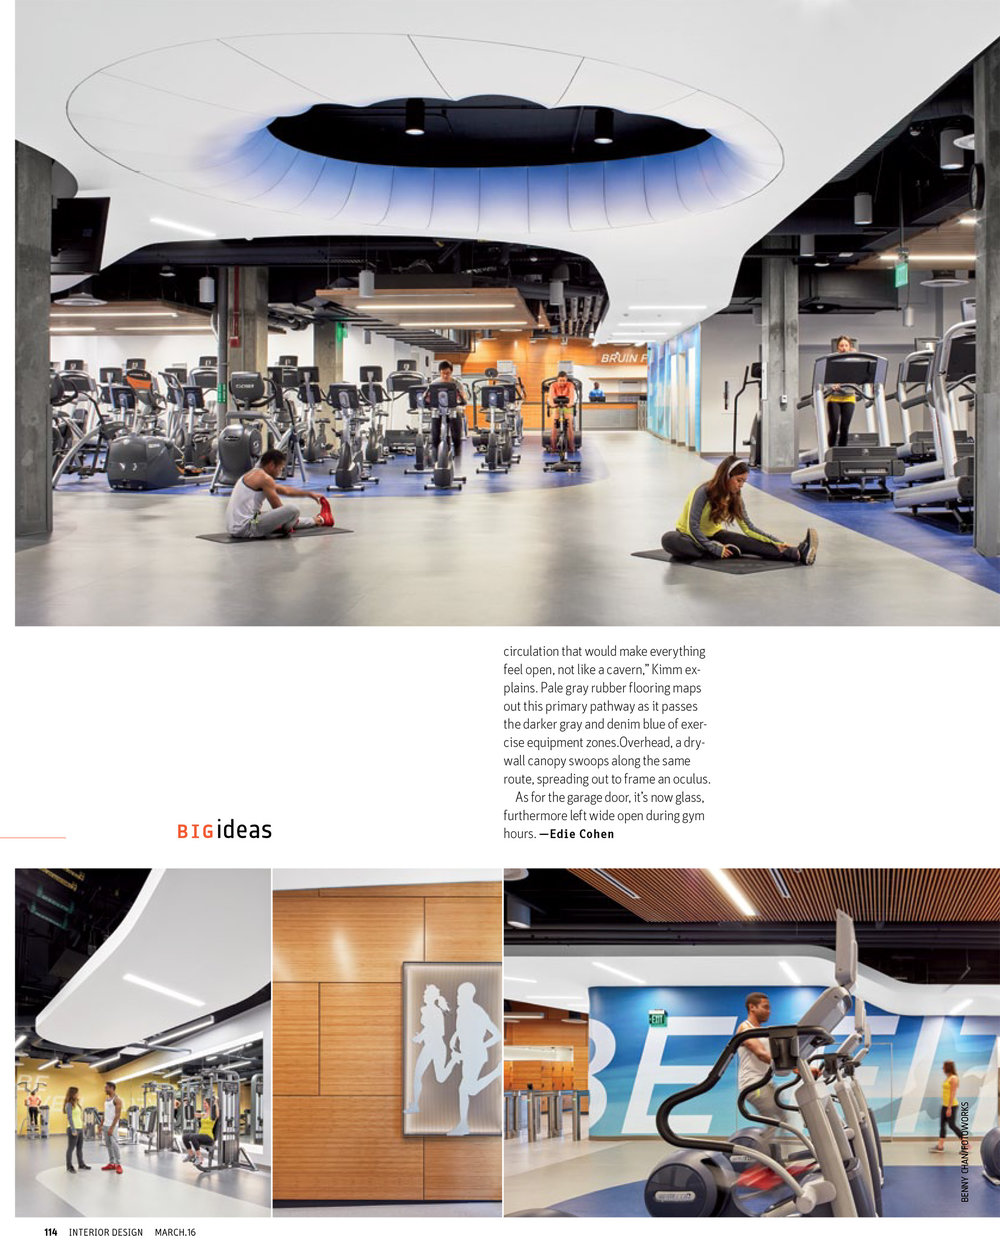 Publication: Interior Design  Architects: JFAK  Photographer: Benny Chan  Retoucher: Erica Lowe